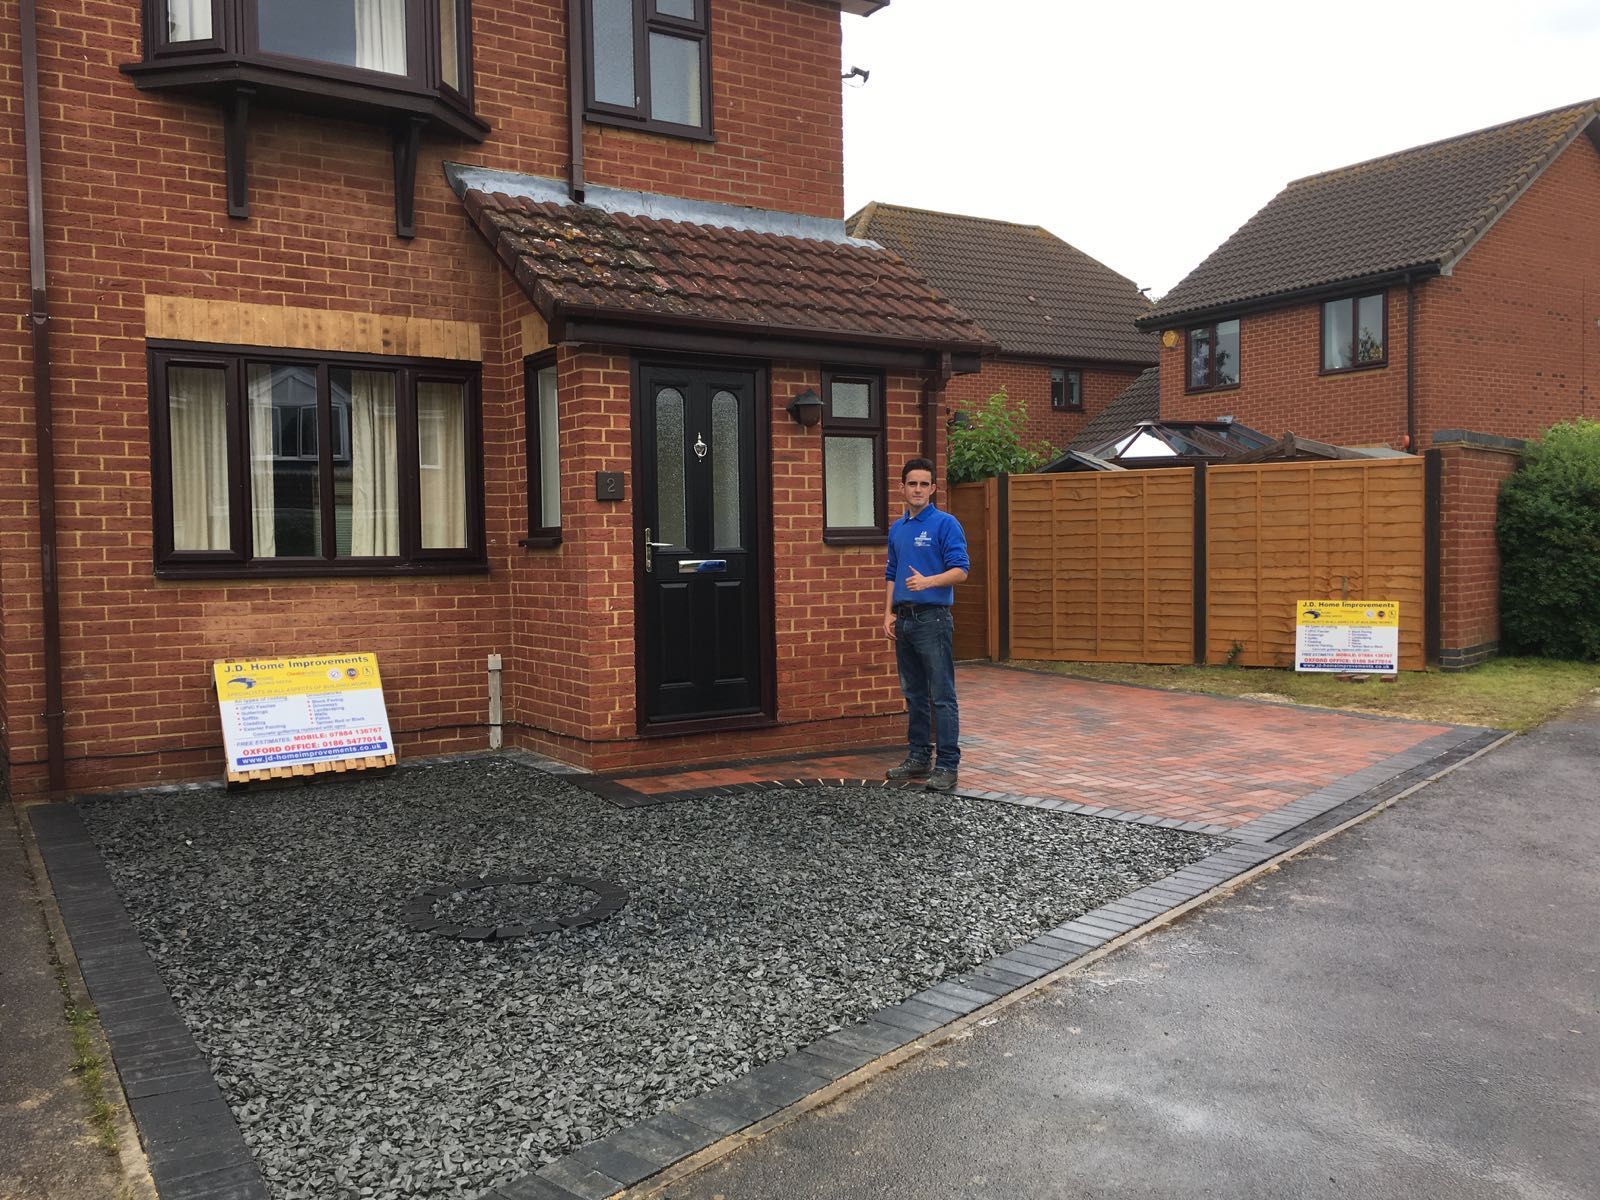 recent project for driveways in Patchway - image shows a block paving driveway